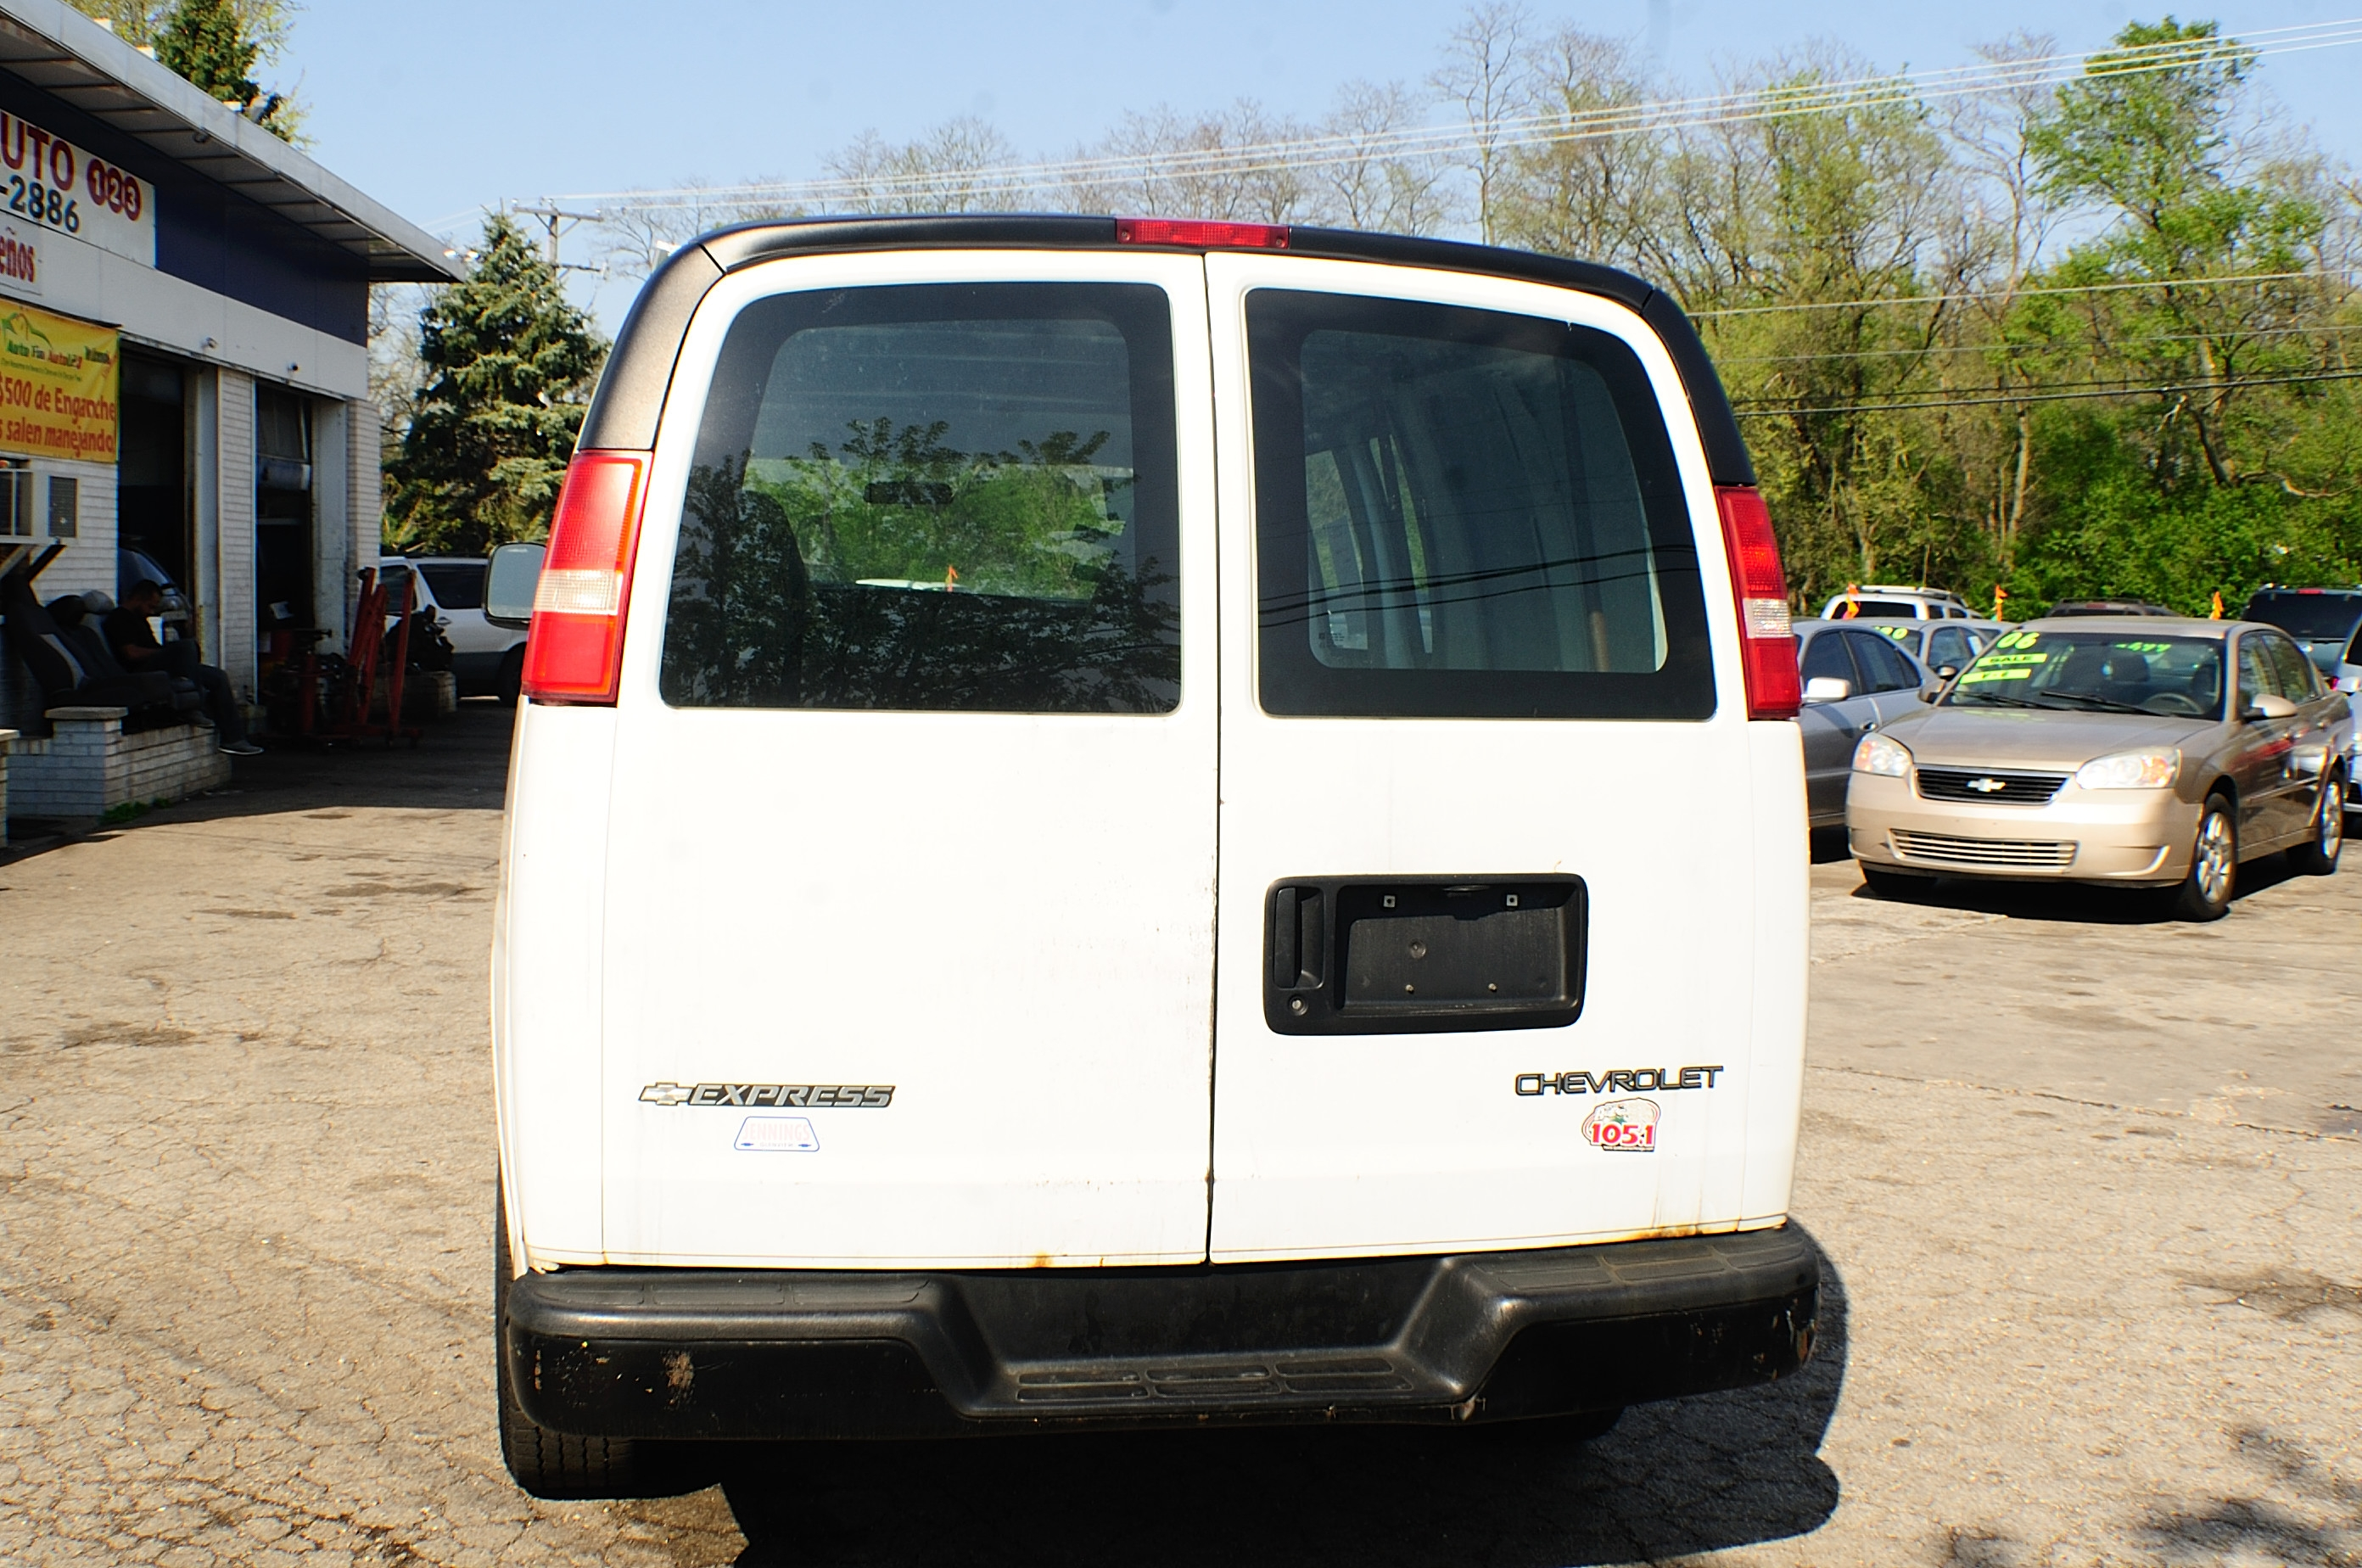 2006 Chevrolet Express 2500 White Used Work Van sale Gurnee Hanover Park Hoffman Estates Lombard